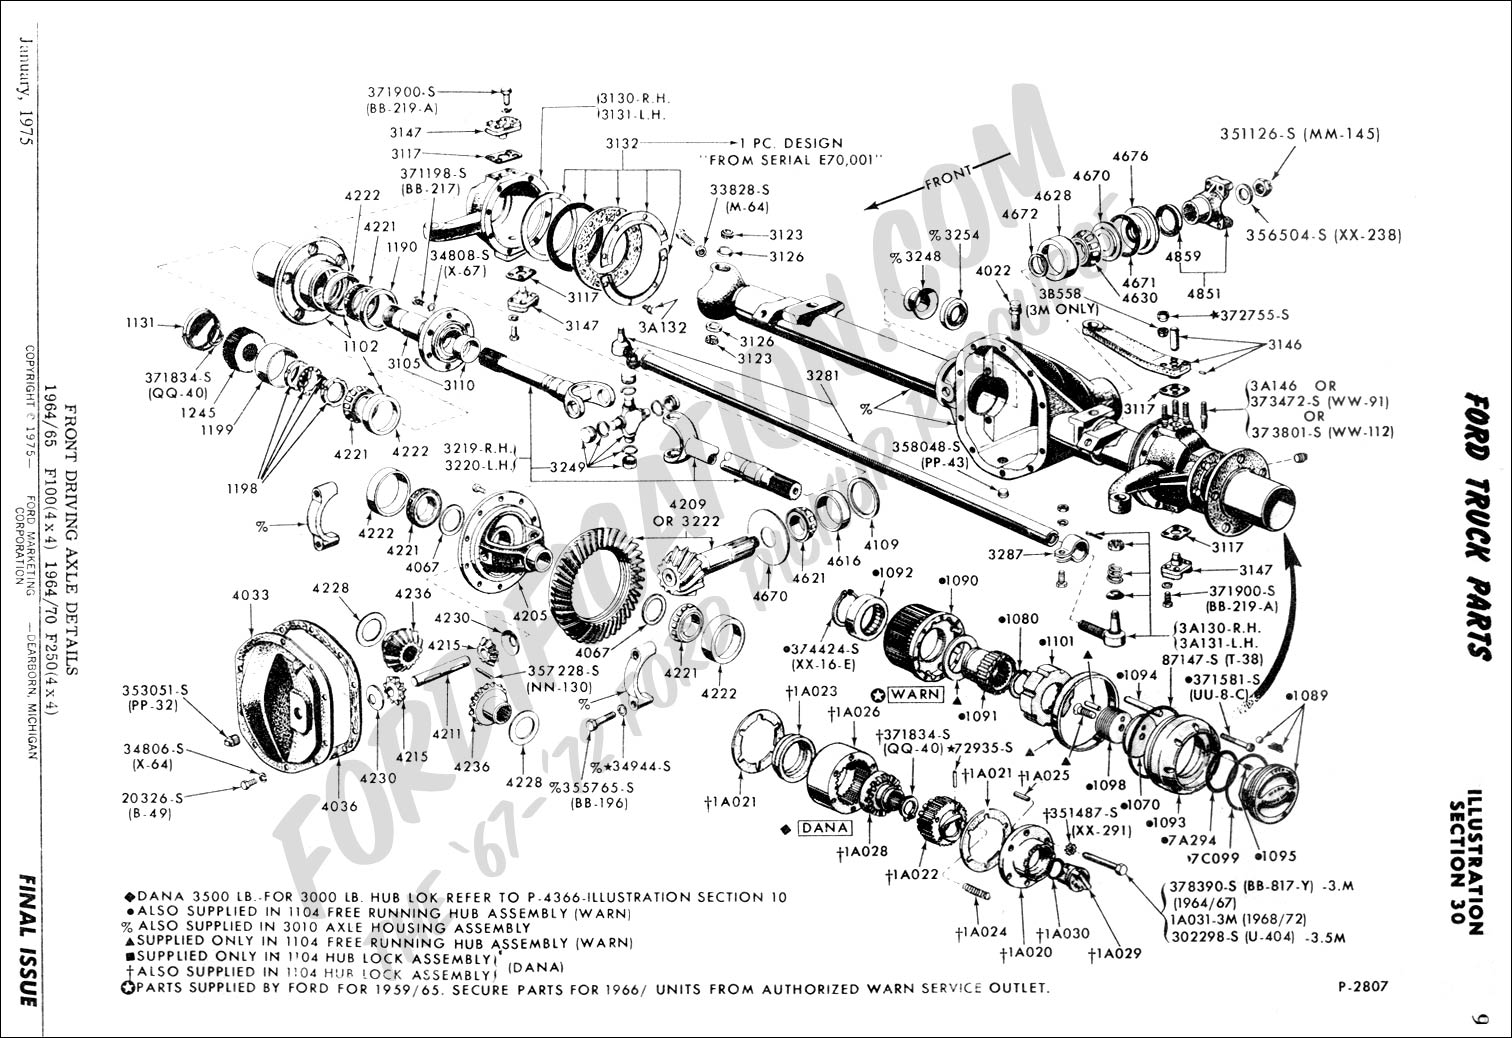 2003 Ford F150 Front End Parts Diagram